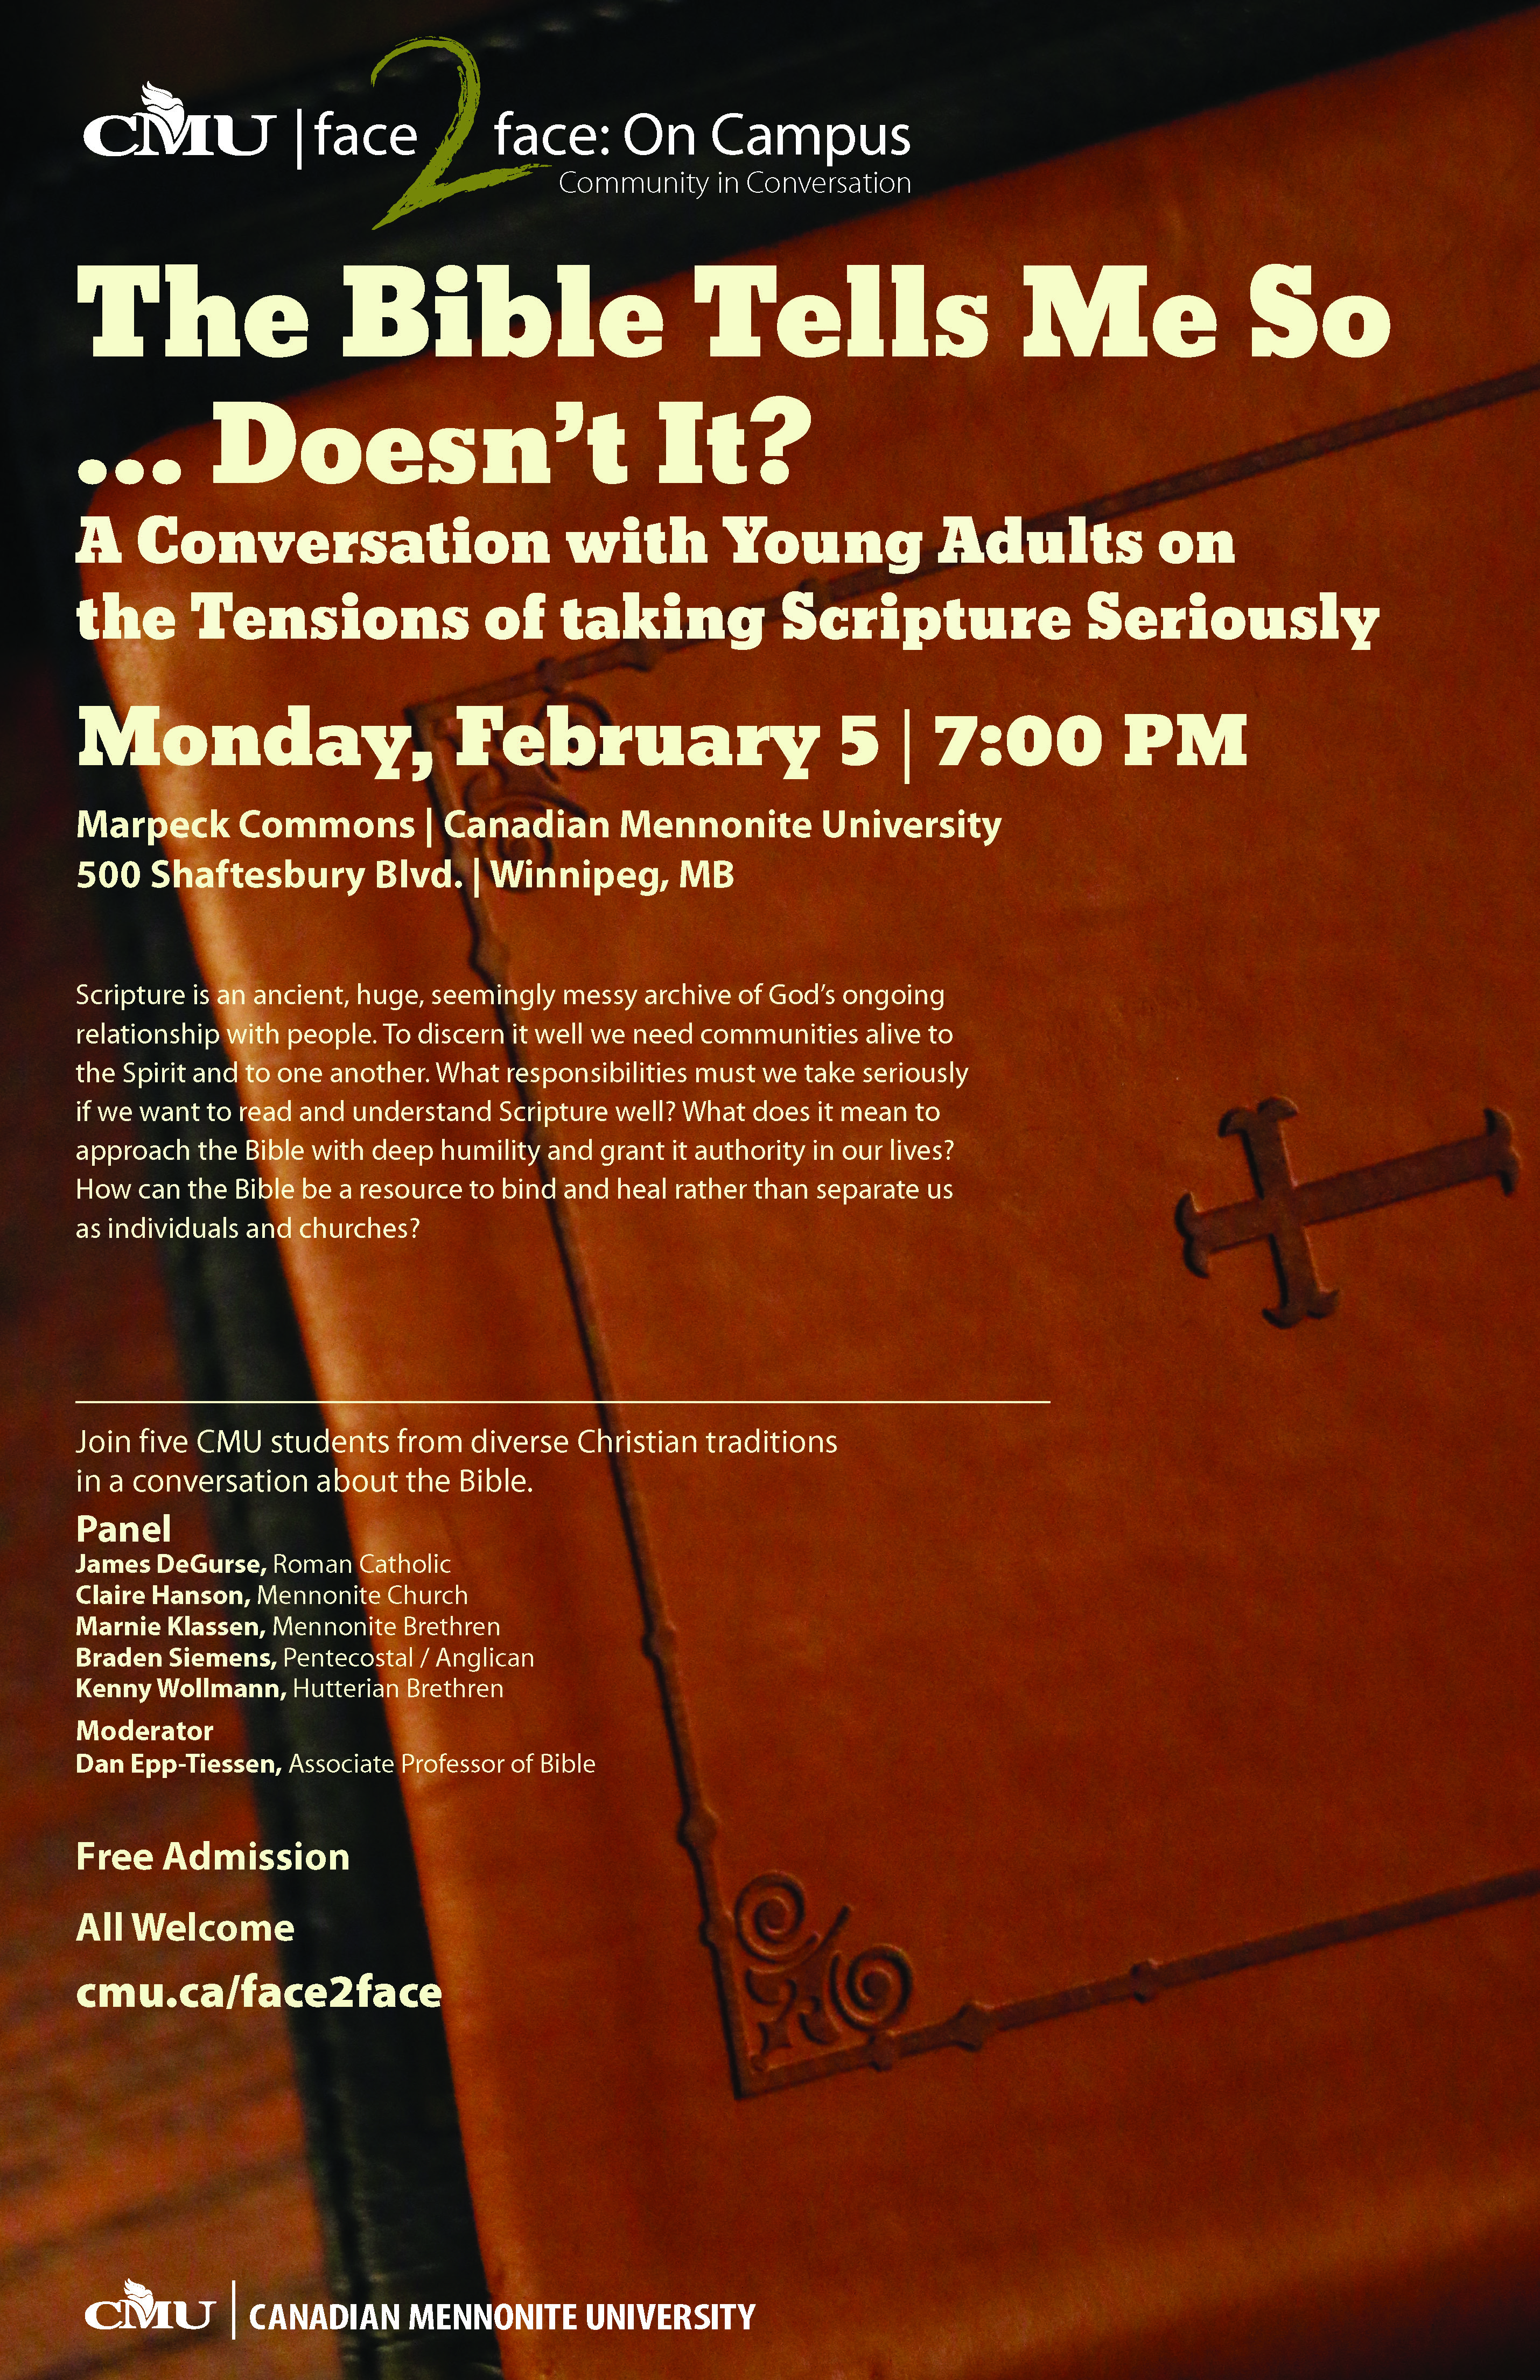 Ecumenical panel to discuss the Bible at upcoming CMU event